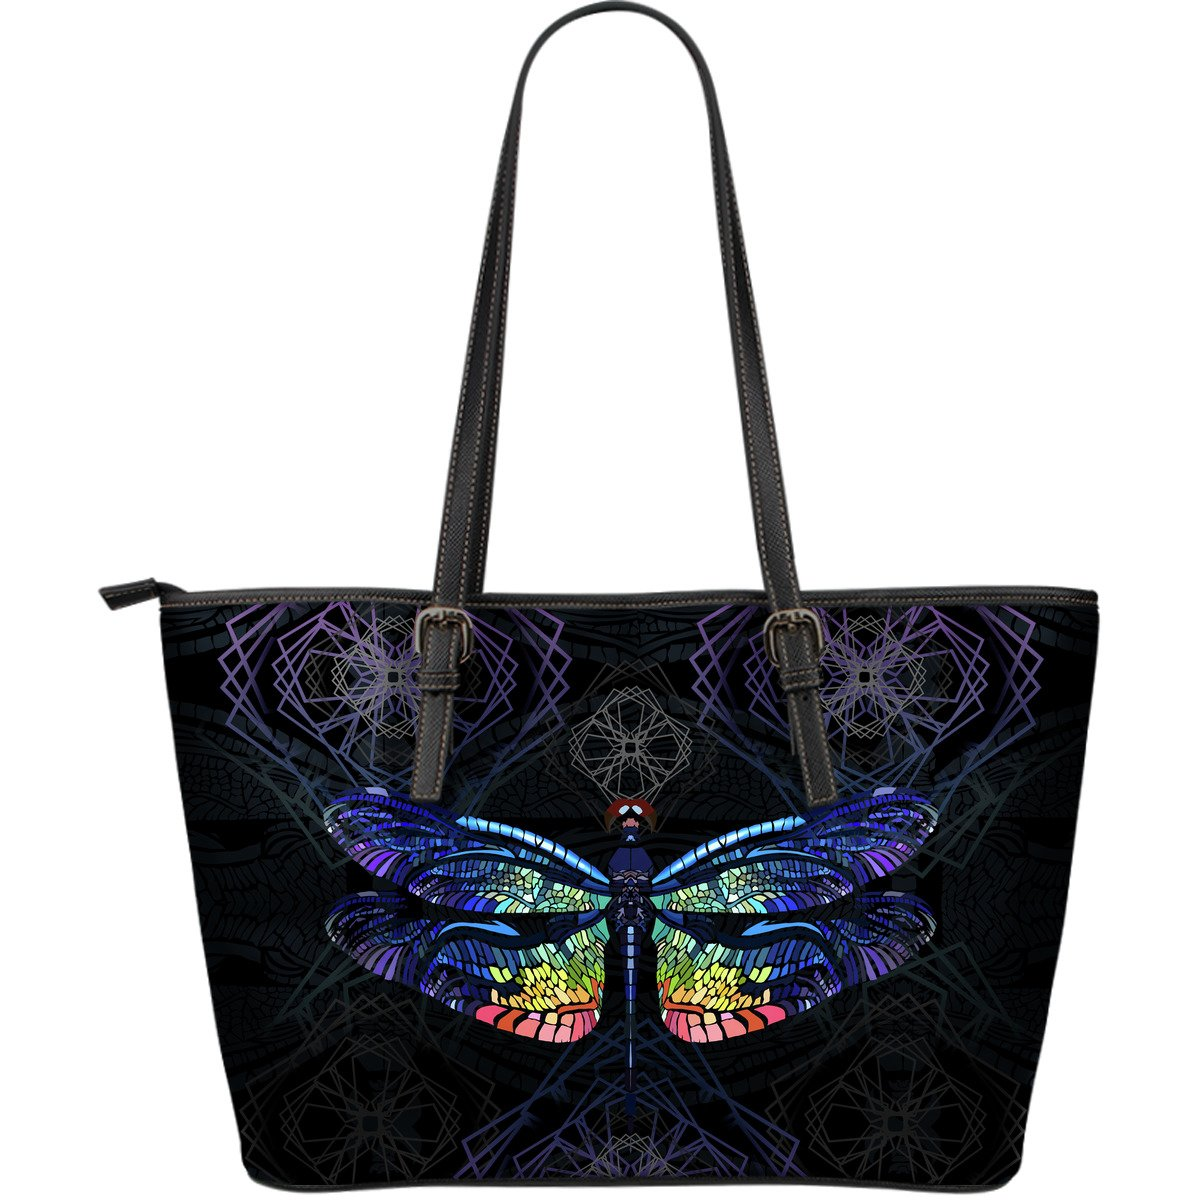 Colorful Dragonfly Print Large Leather Tote Bag